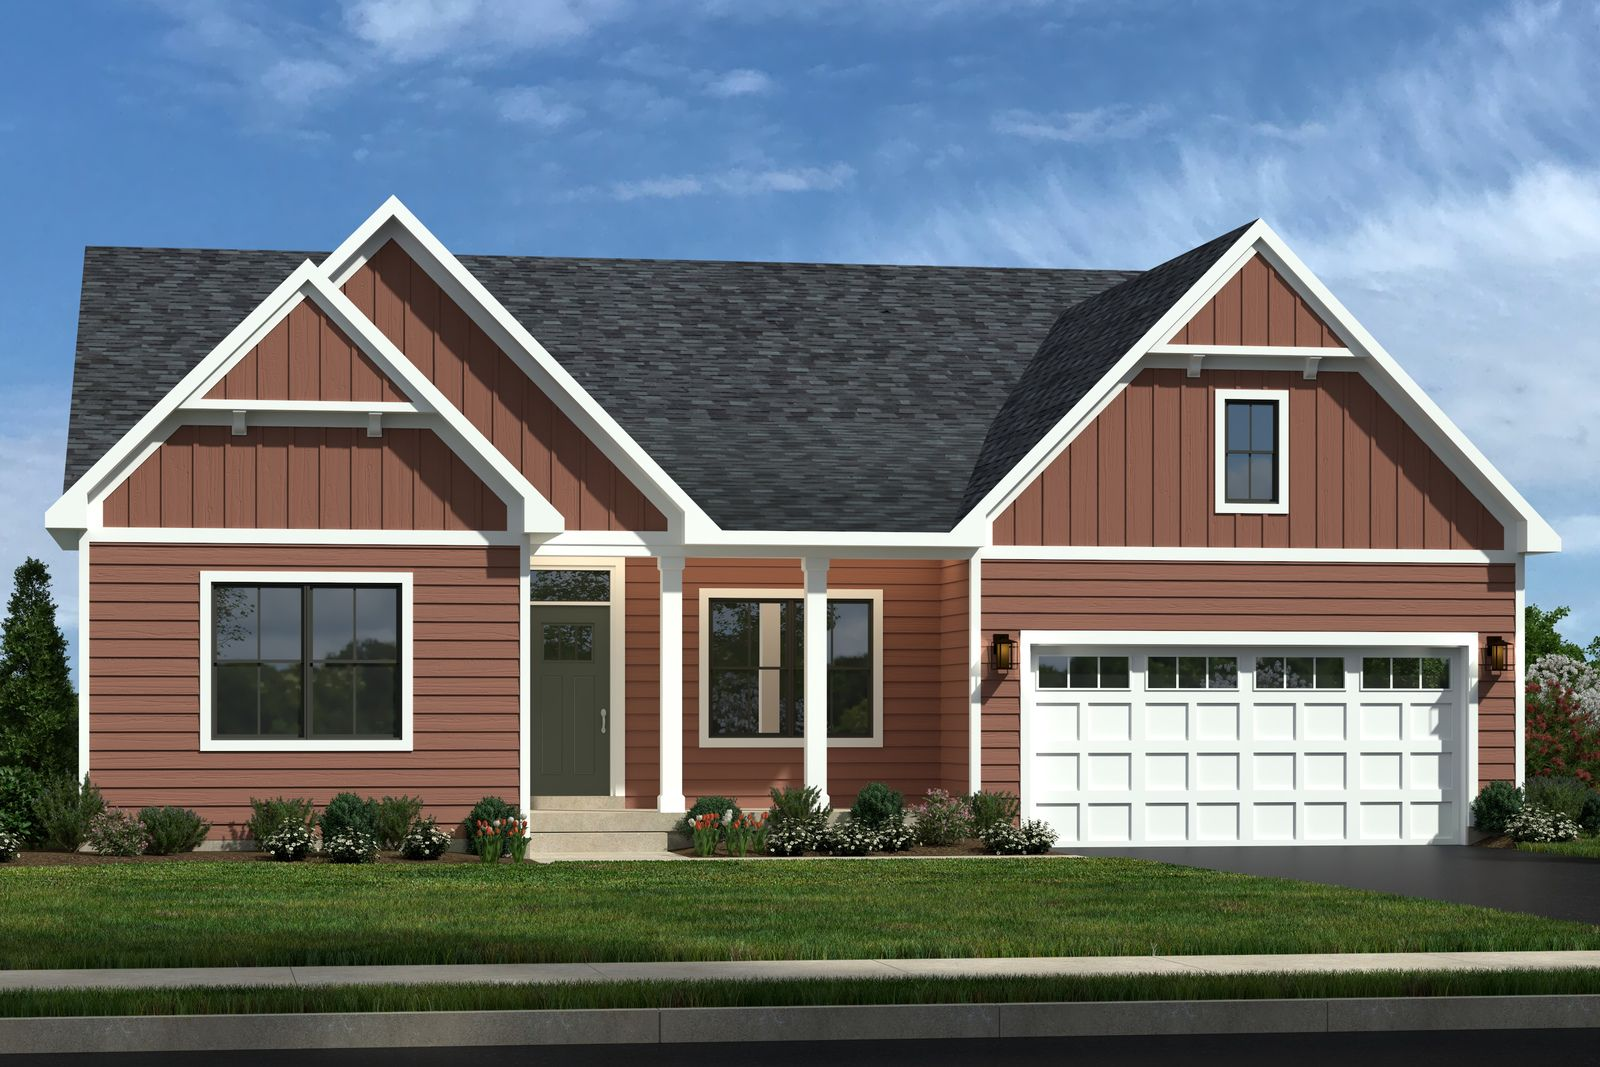 Welcome to Atlantic Lakes:Lowest priced new single-family homes near Fenwick & OCMD. Lake-oriented community with farmhouse designs, planned amenities & first-floor living.Click here to join the VIP list!